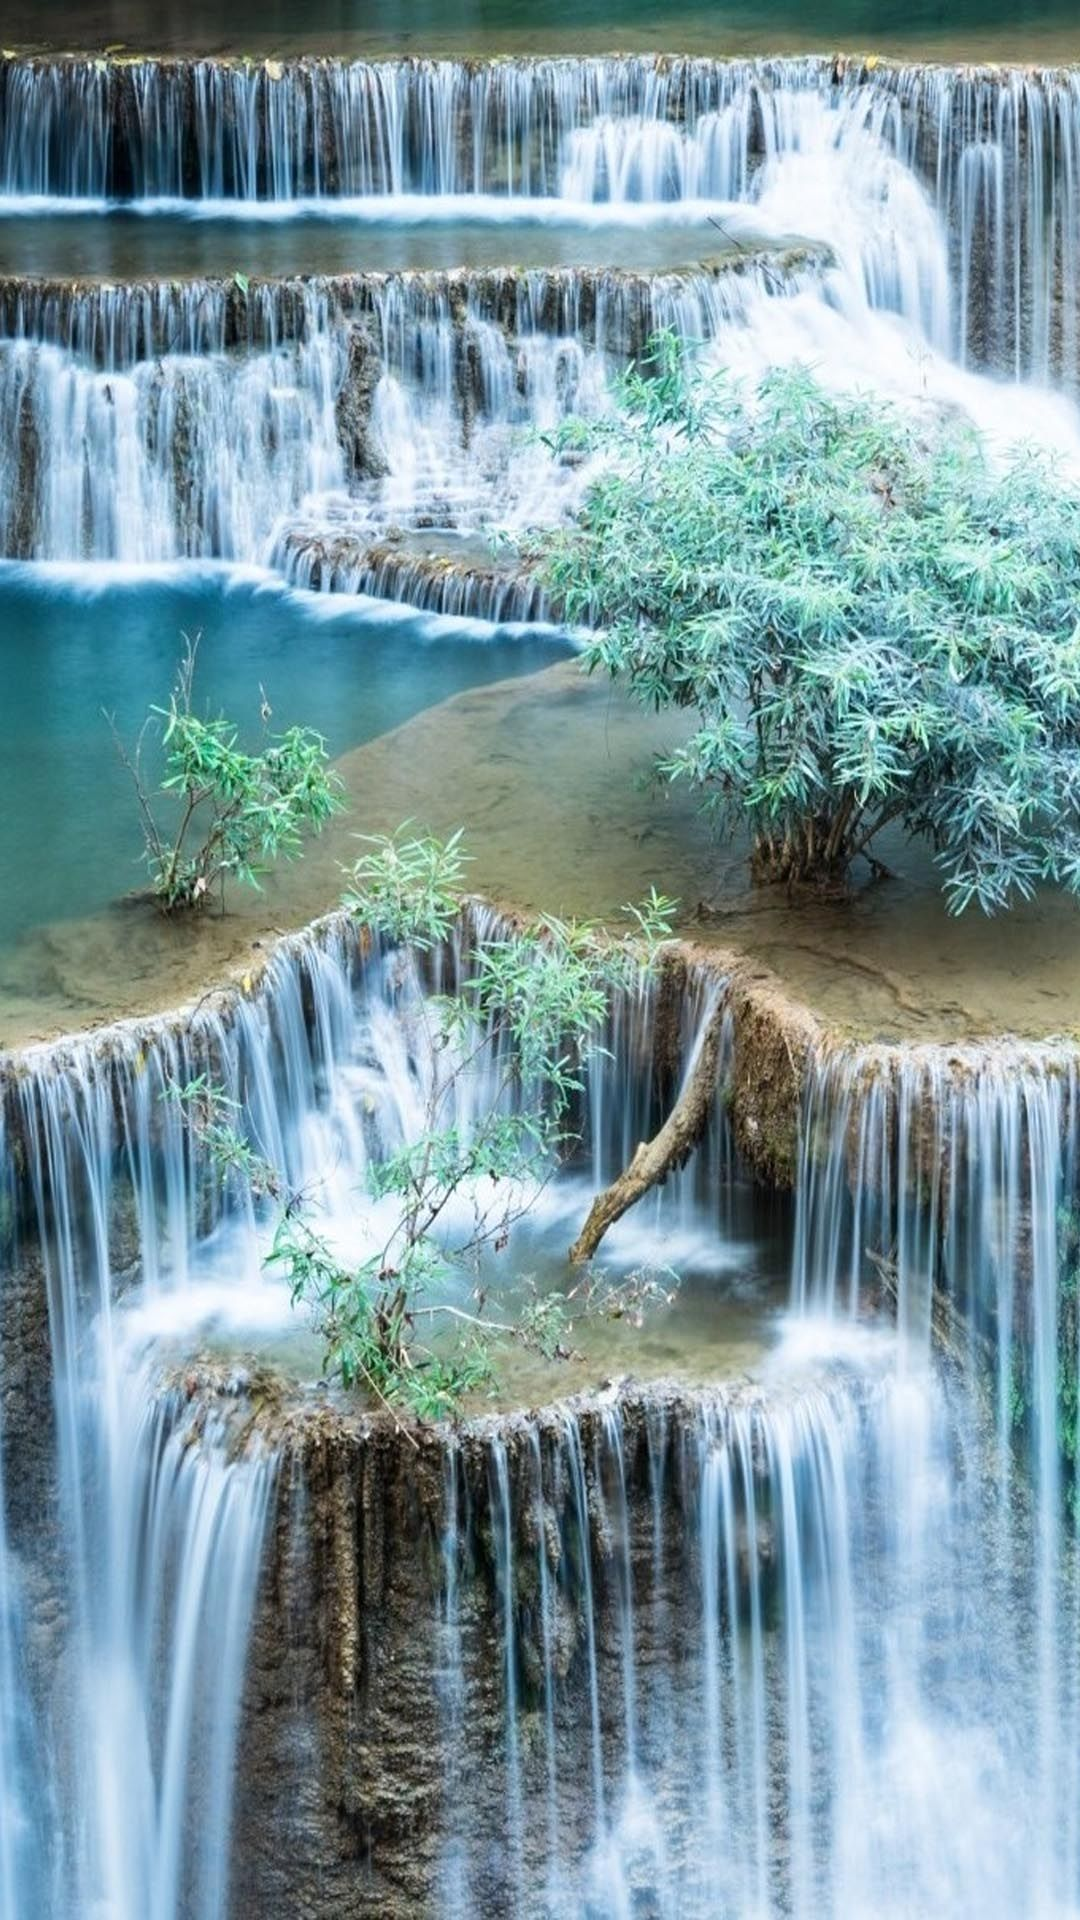 Amazing Nature Waterfall Hd Iphone Wallpaper Beautiful Nature Waterfall Nature Photography